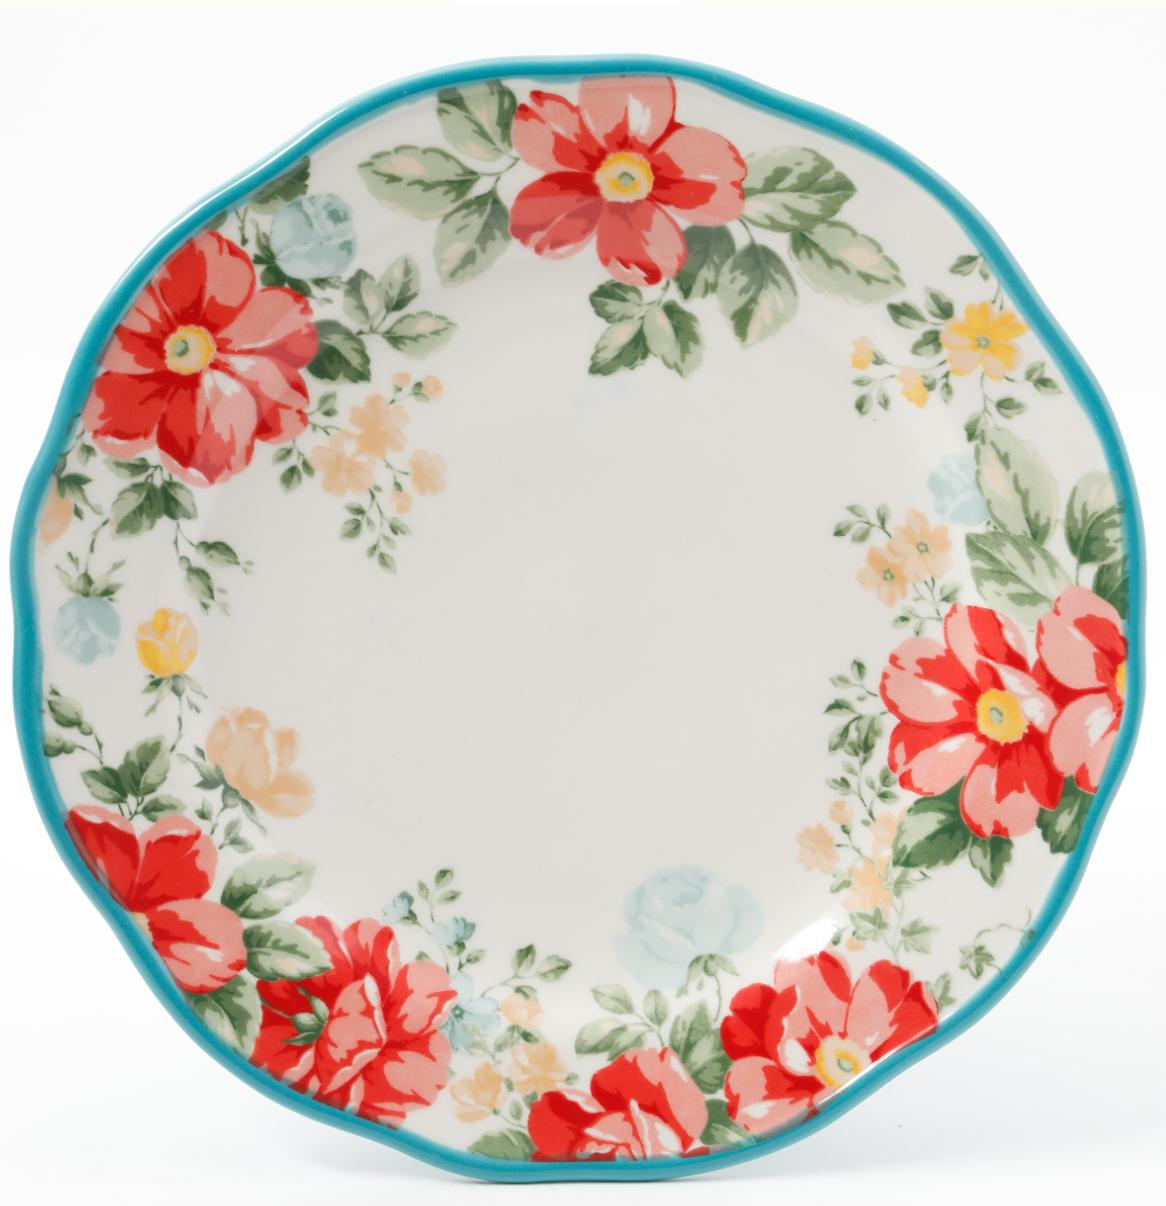 The Ruffle Floral Dinnerware 20